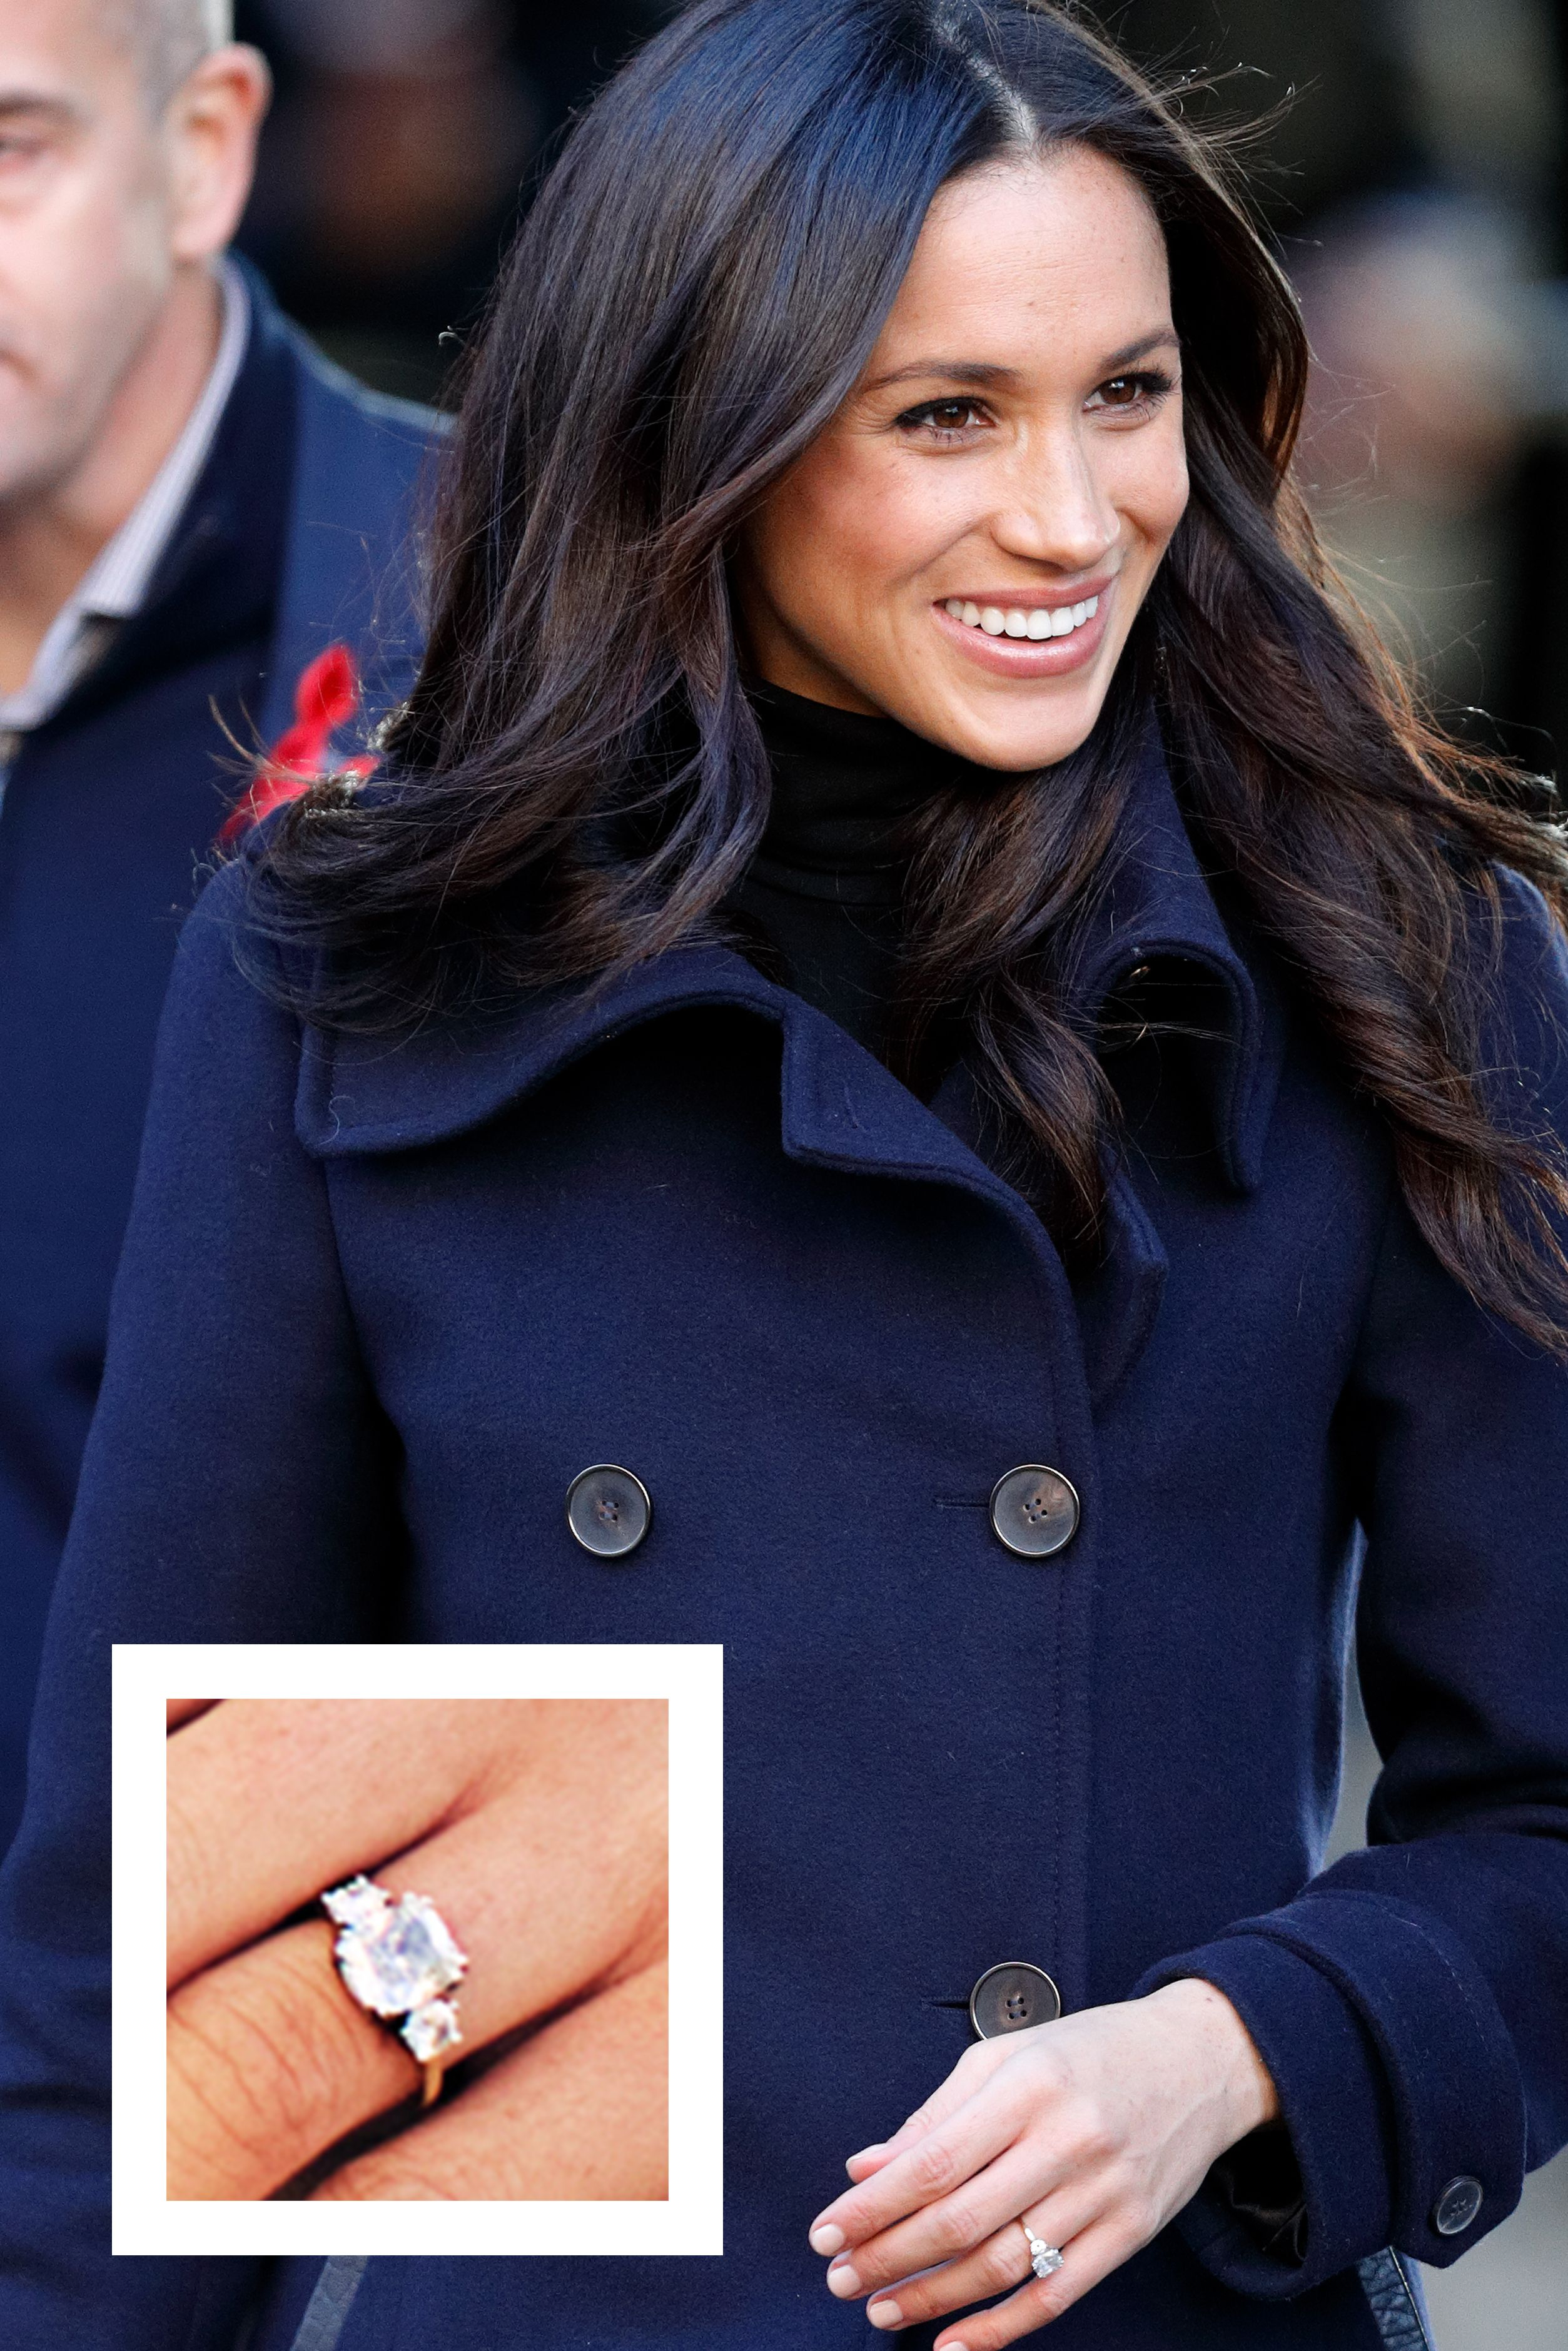 a of royal meghan pinterest at cambridge by instagram hrh harry rings kate markle dupler on duchess prince royalty back over years the engagement pin josie look meg